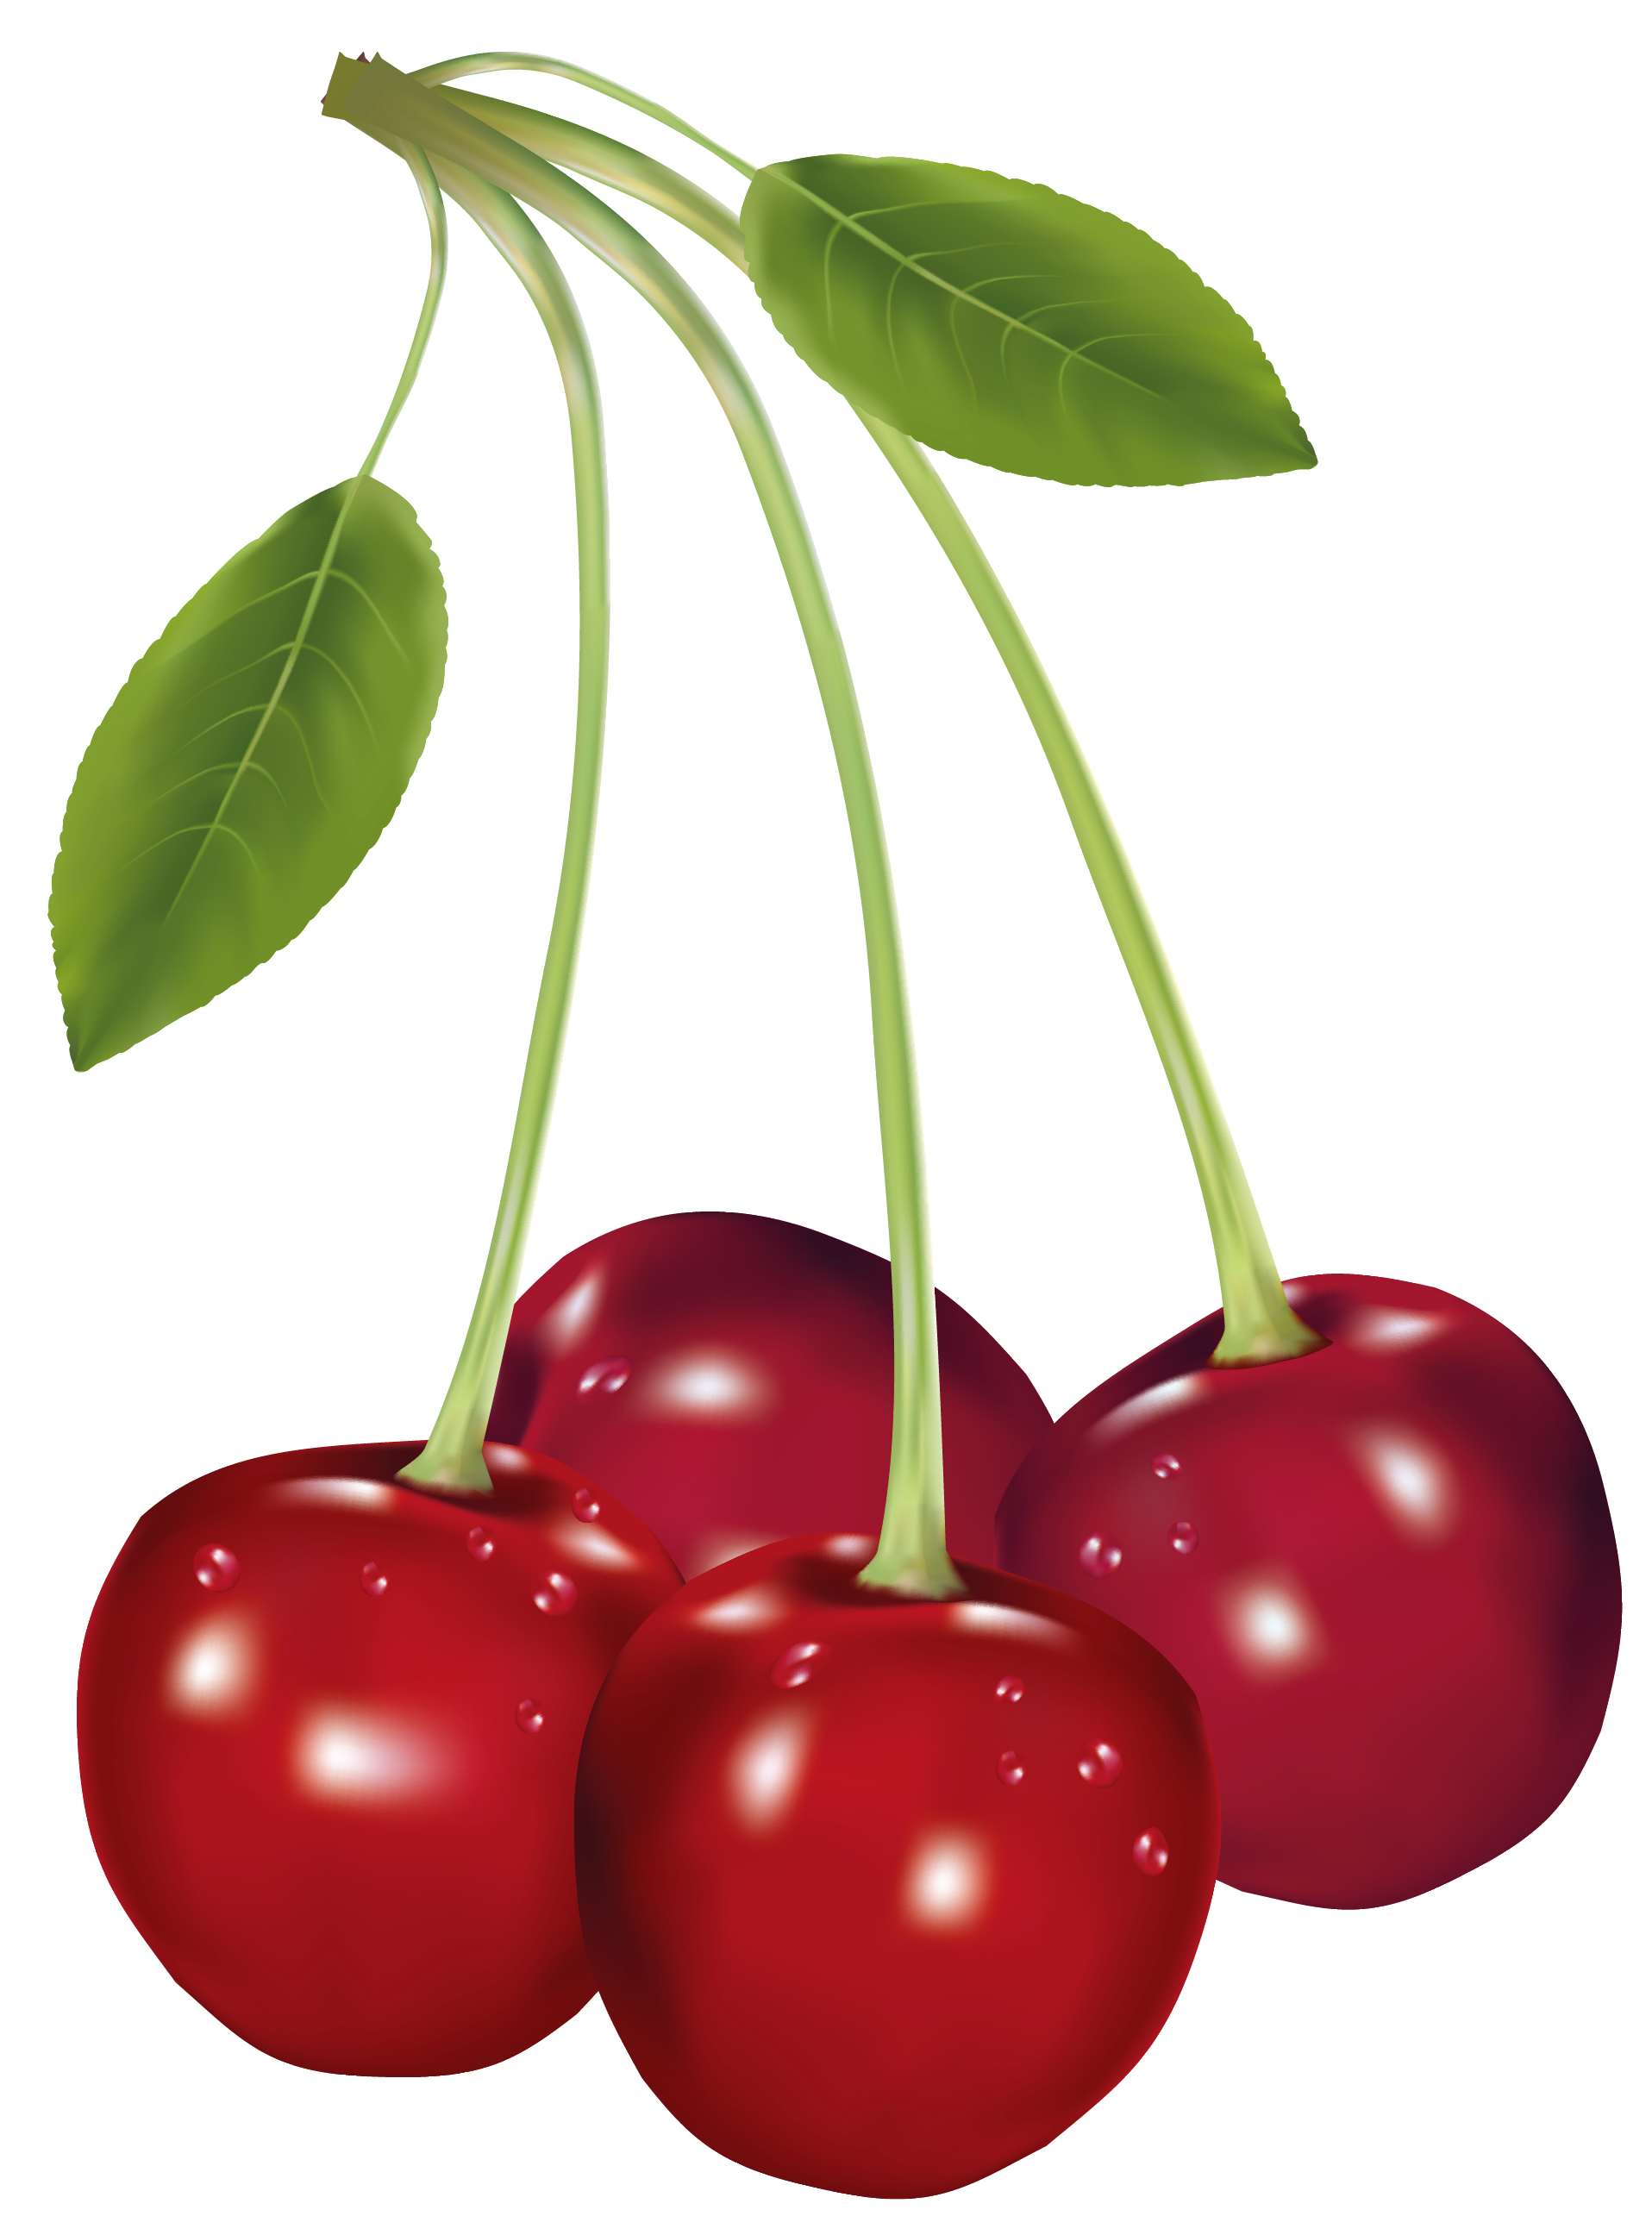 red cherries clipart clipground. Black Bedroom Furniture Sets. Home Design Ideas